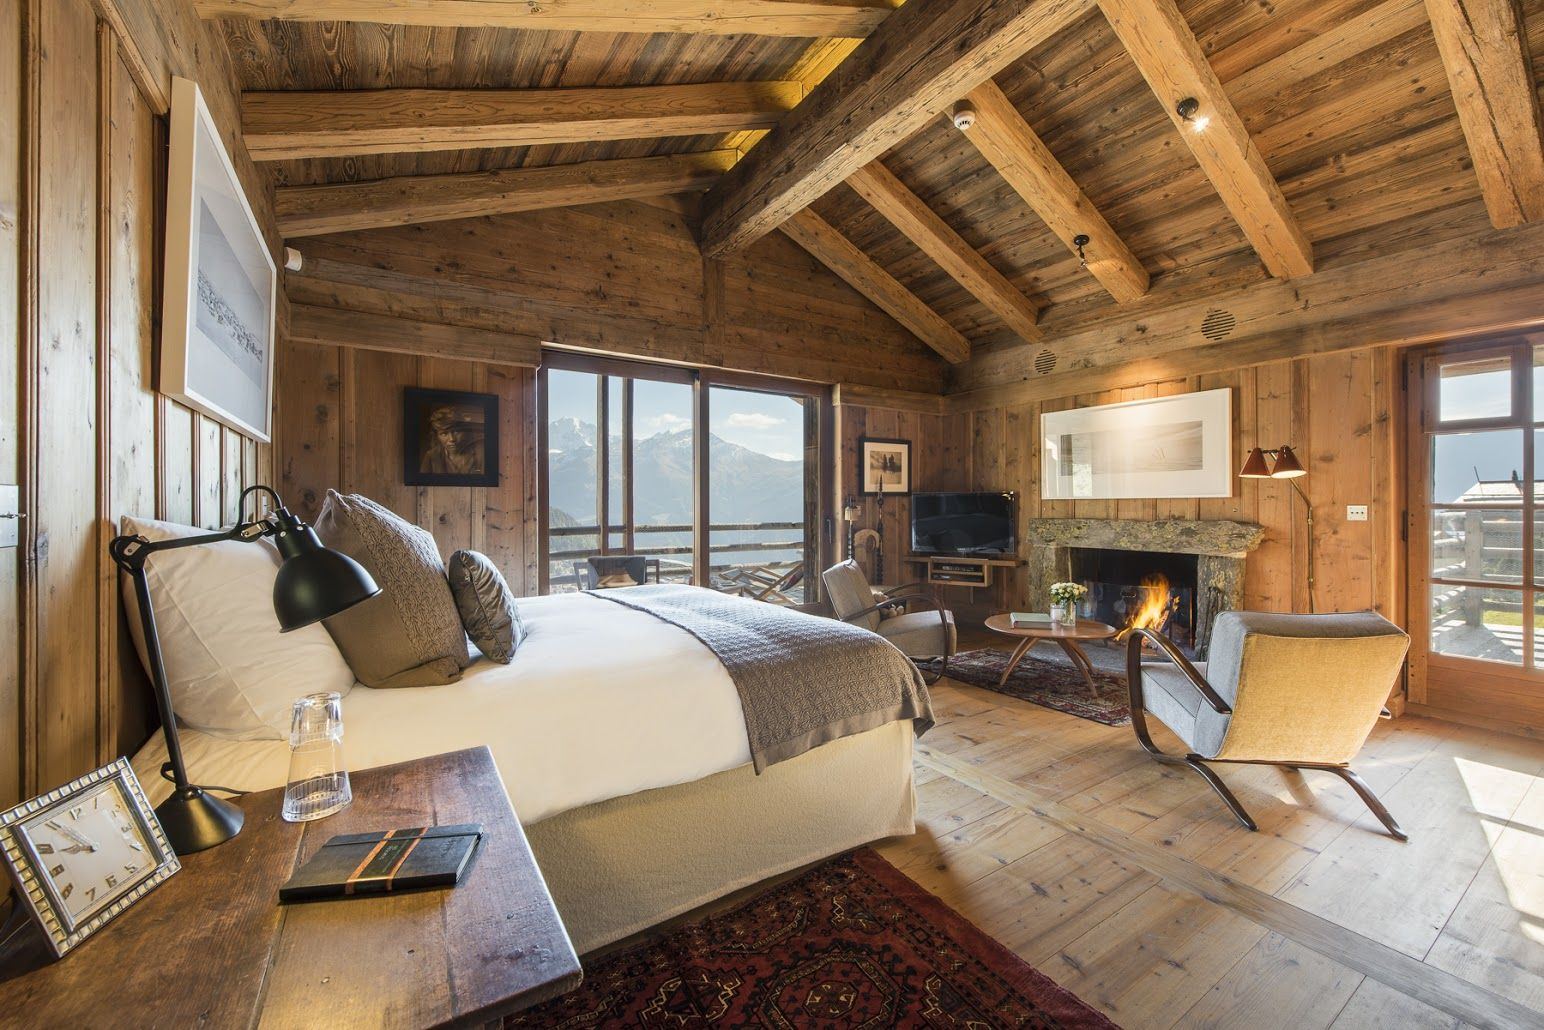 Master bedroom with jacuzzi tub  Pin by Bramble Ski on Chalet Orsini  Verbier  Pinterest